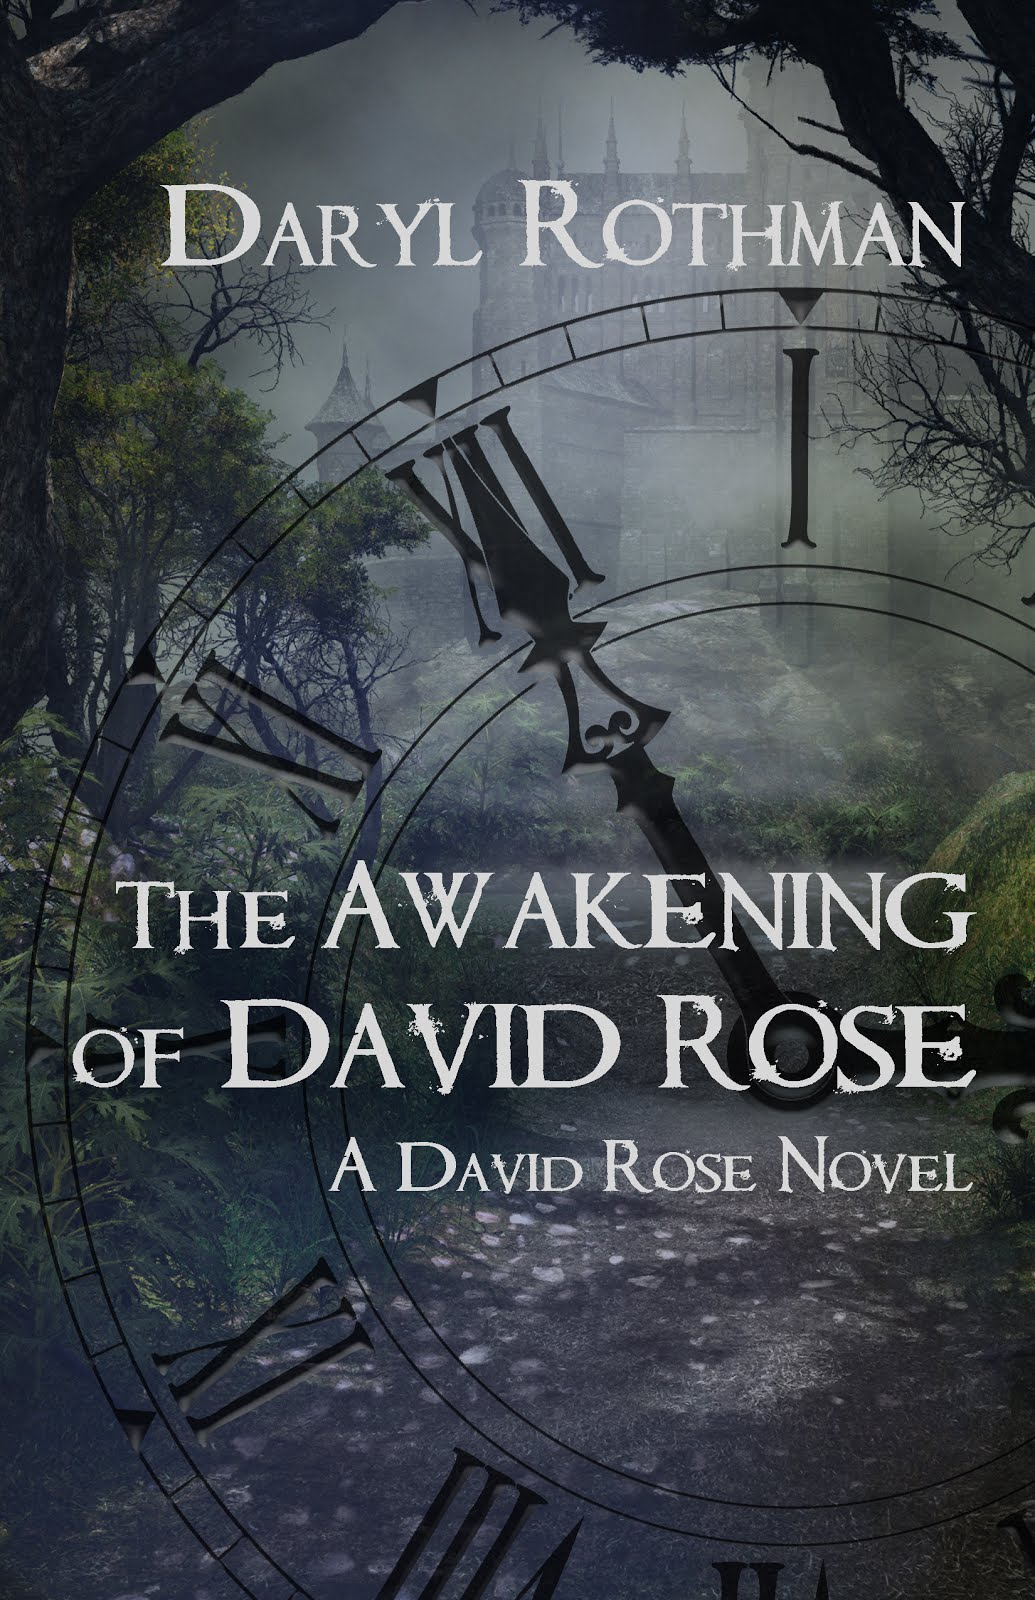 Get The Awakening of David Rose